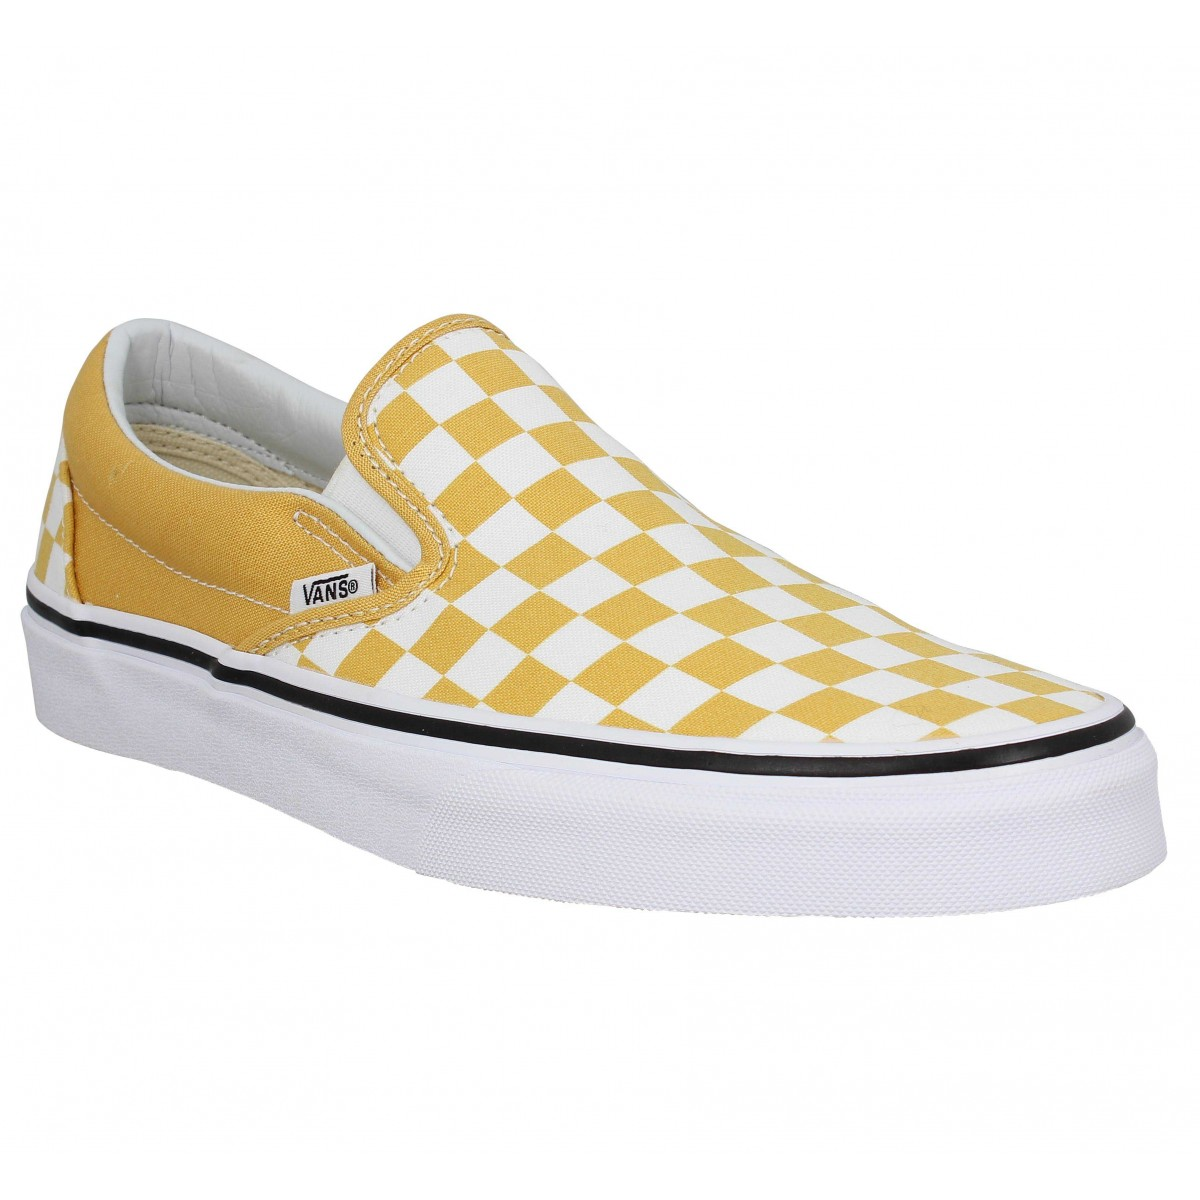 Baskets VANS Classic Slip On toile Homme Ocre